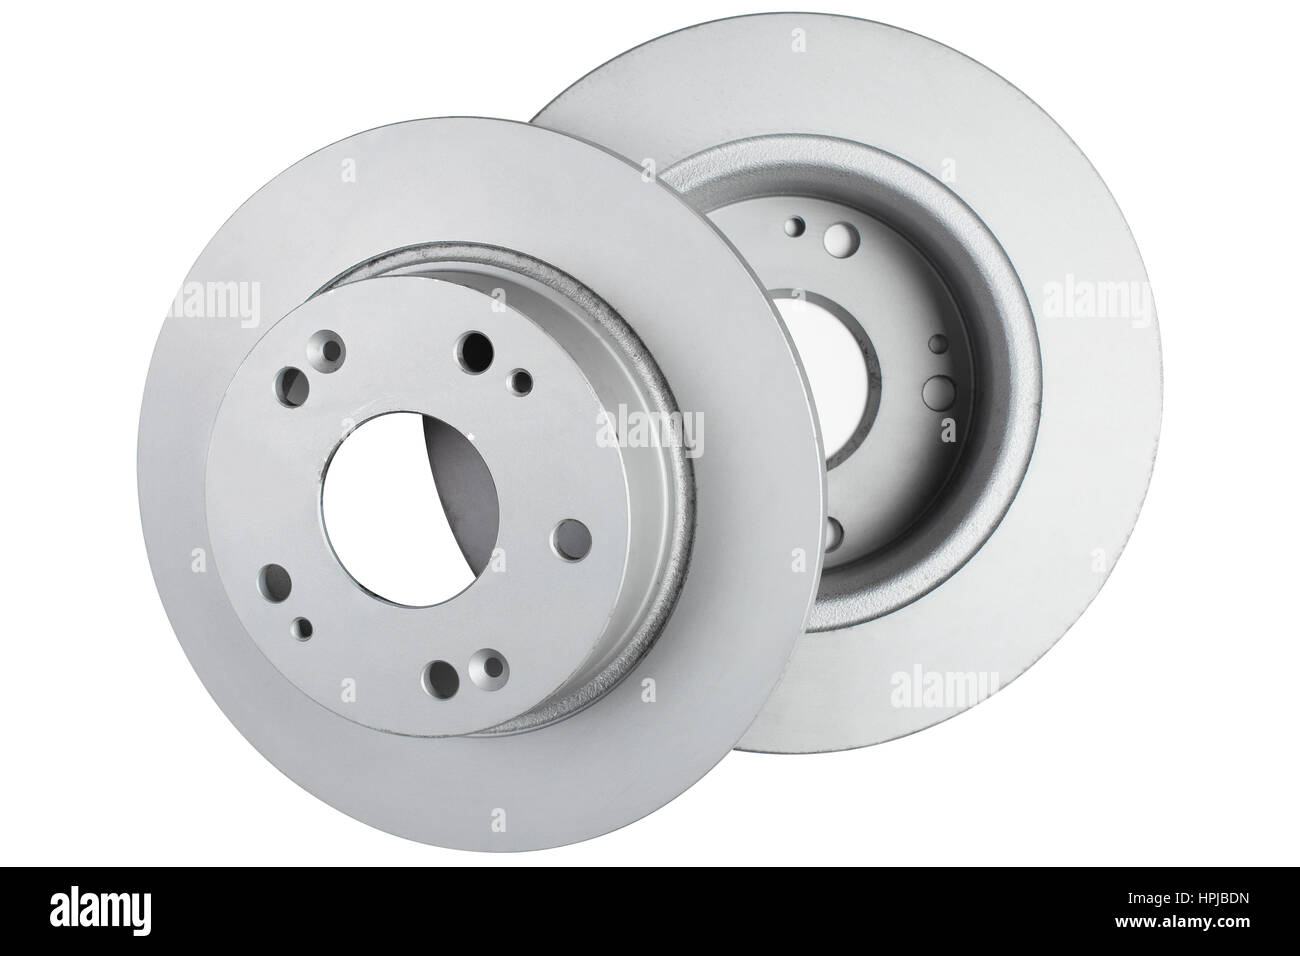 Disk Brakes Stock Photos Images Alamy Disc Rear For Car On White Background With Zinc Coating Image